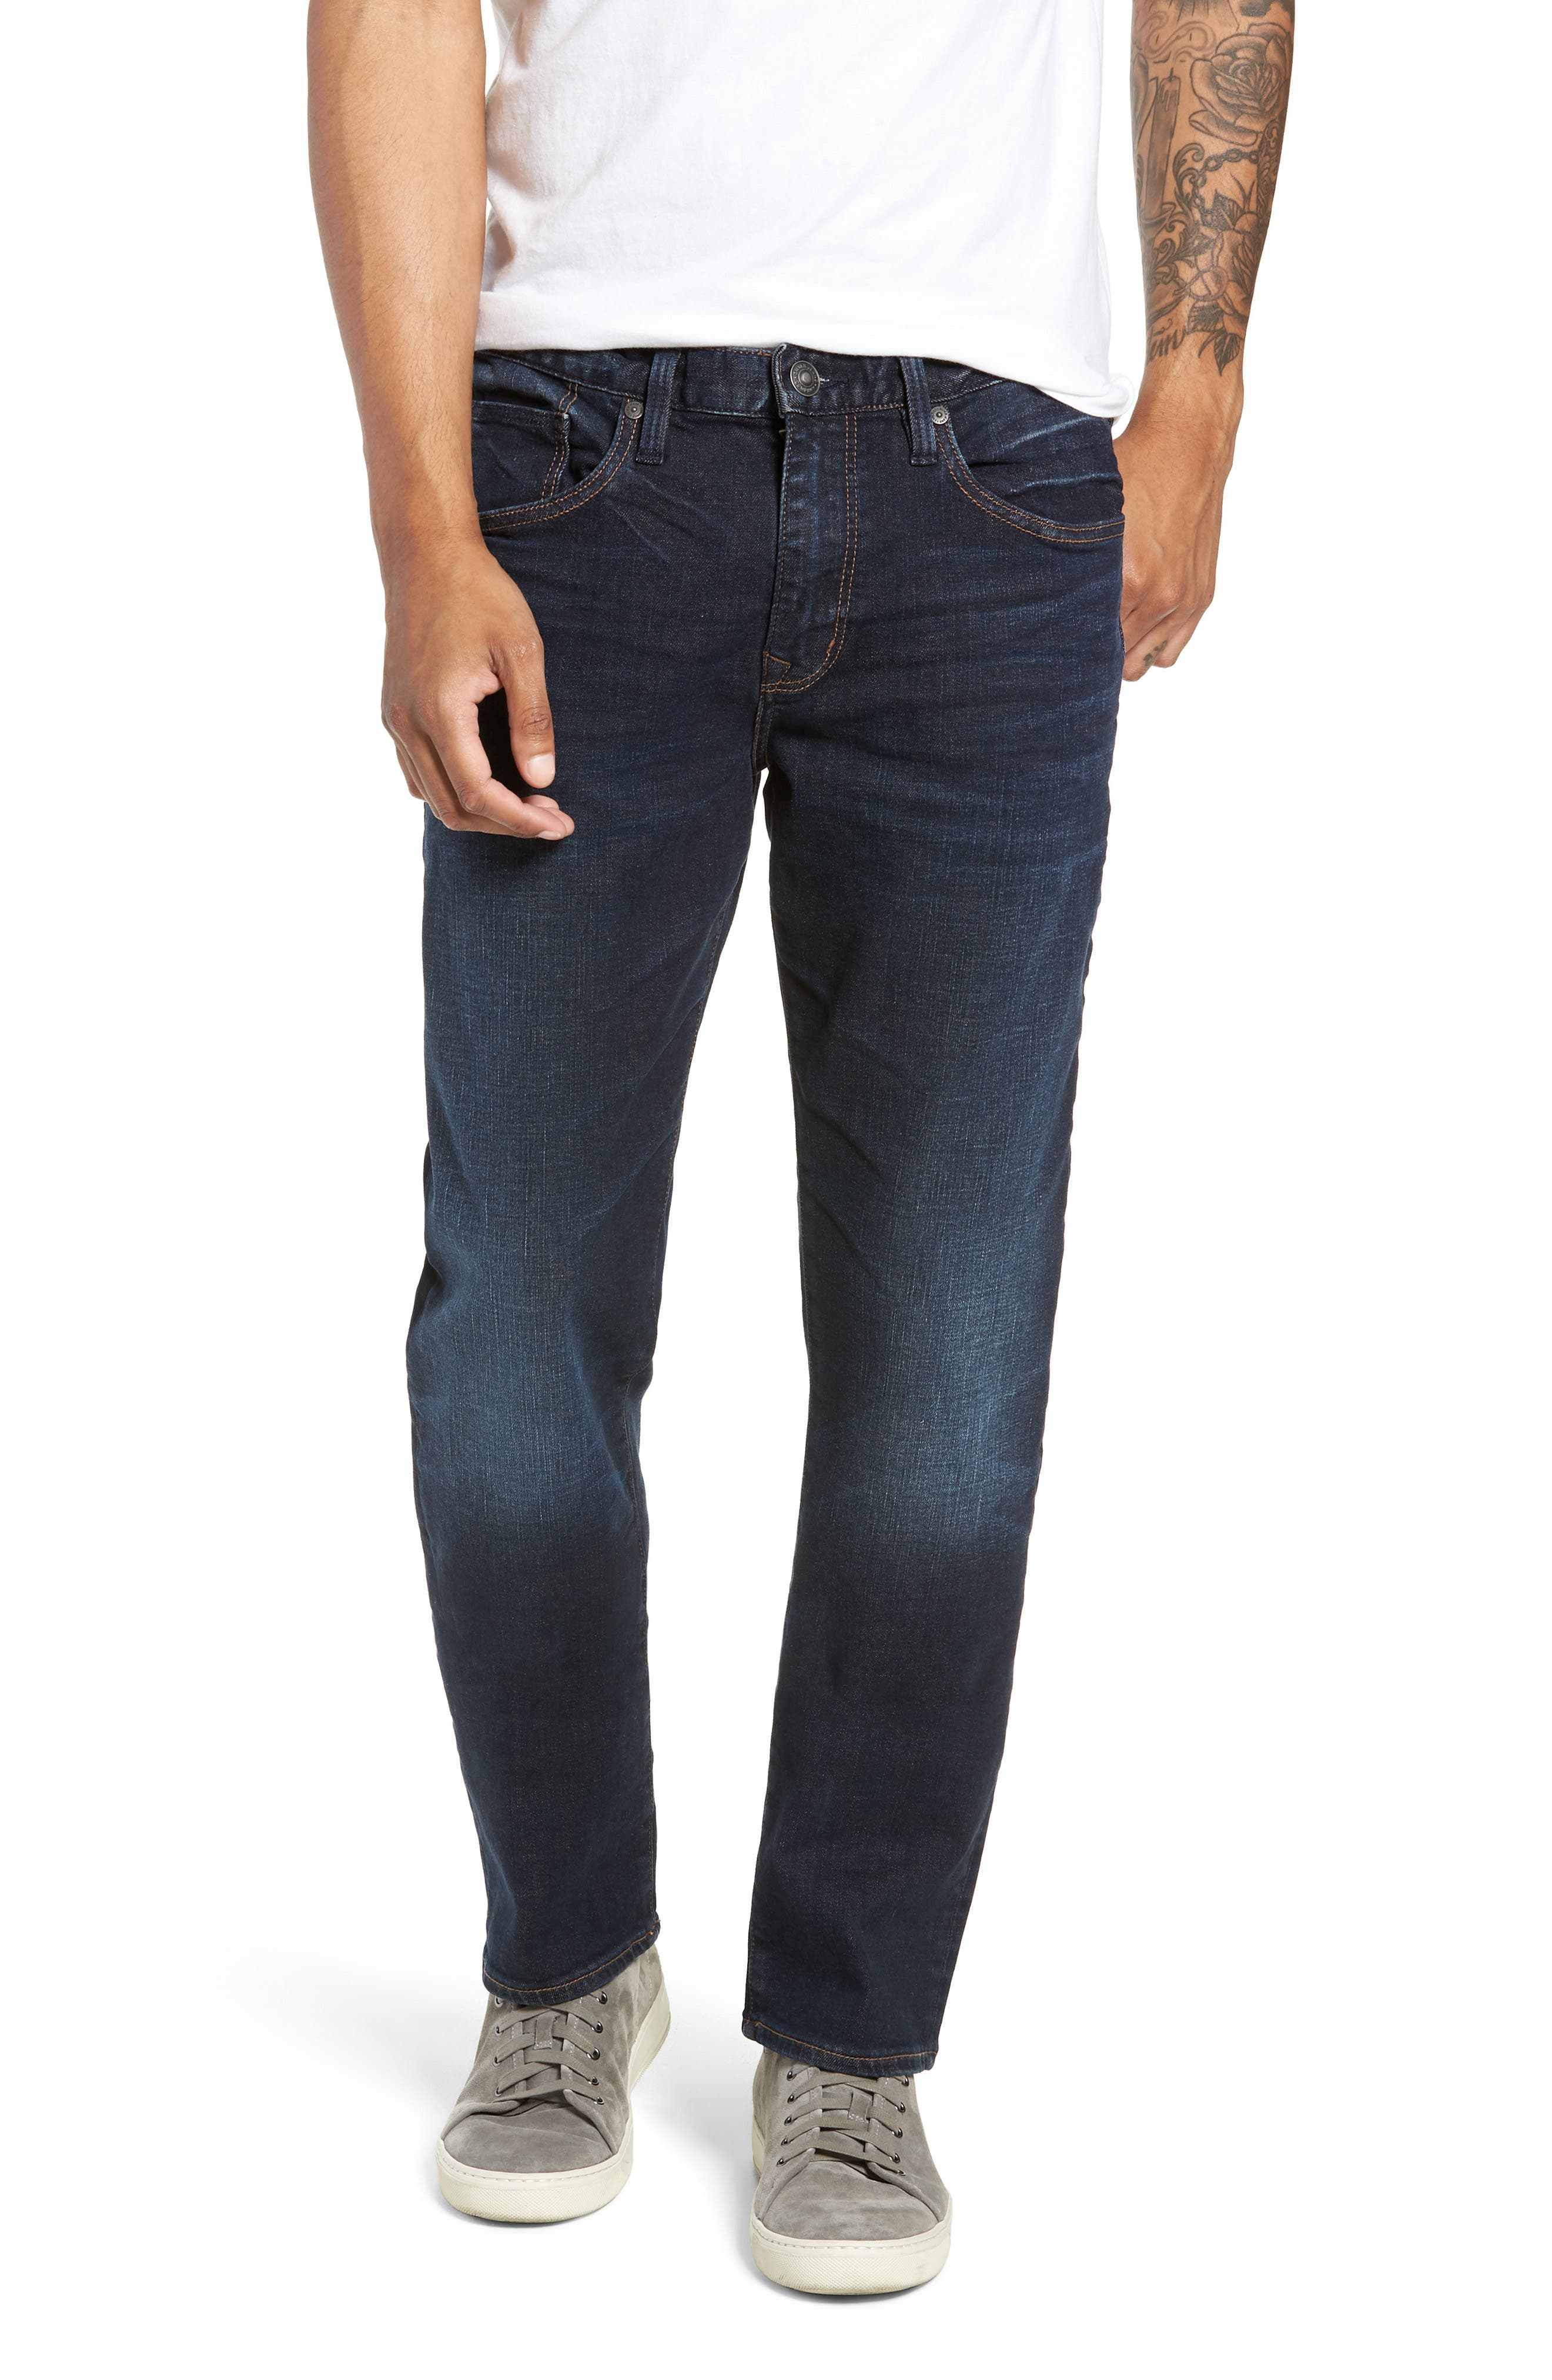 Men's Silver Jeans Co. Kenaston Slim Fit Jeans